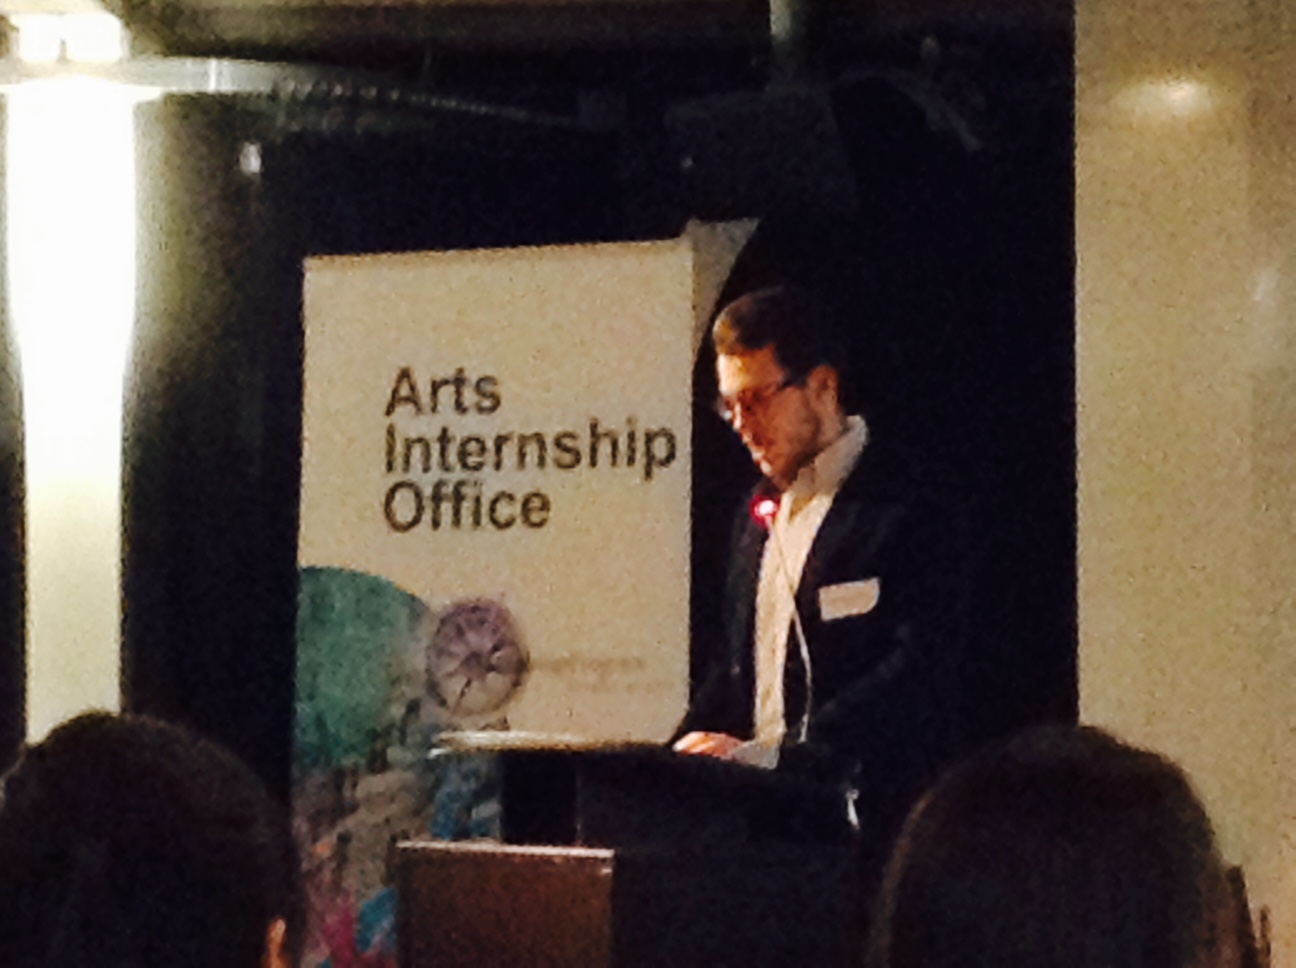 .txtLAB Intern Fedor Karmanov speaks at ARIA Event